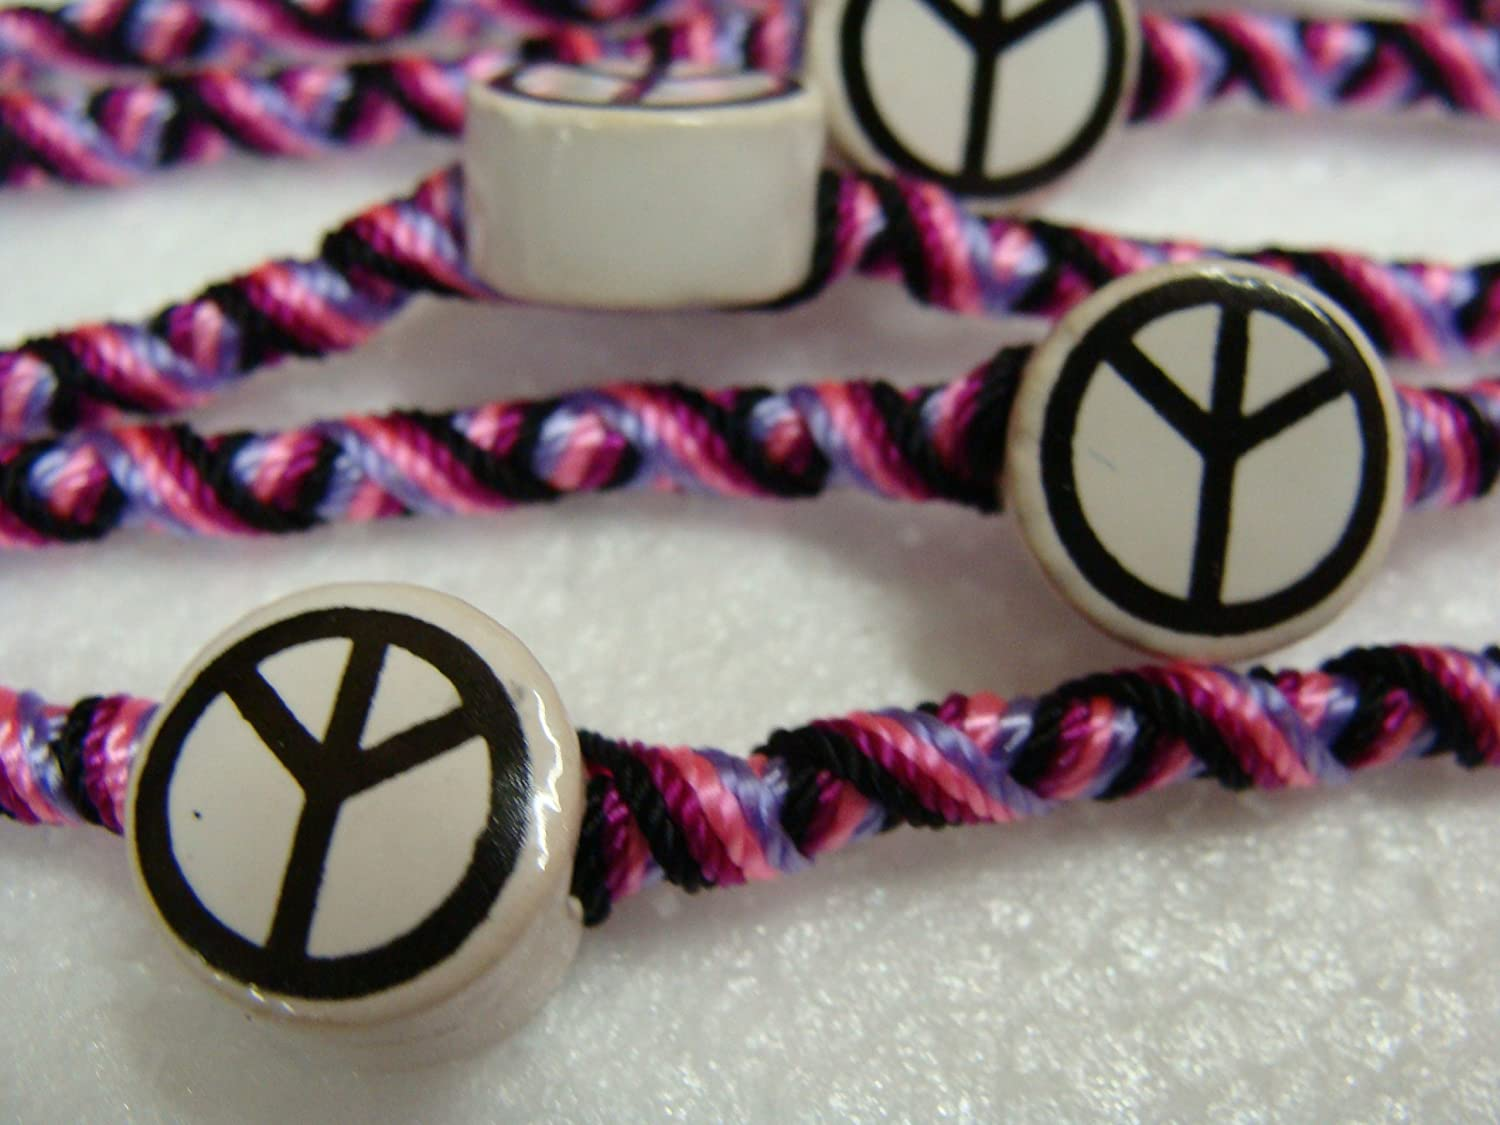 Amazon.com: Peace Symbol Friendship Bracelets Pack of 12 Units Gifts Schools Teams Wholesale: Toys & Games